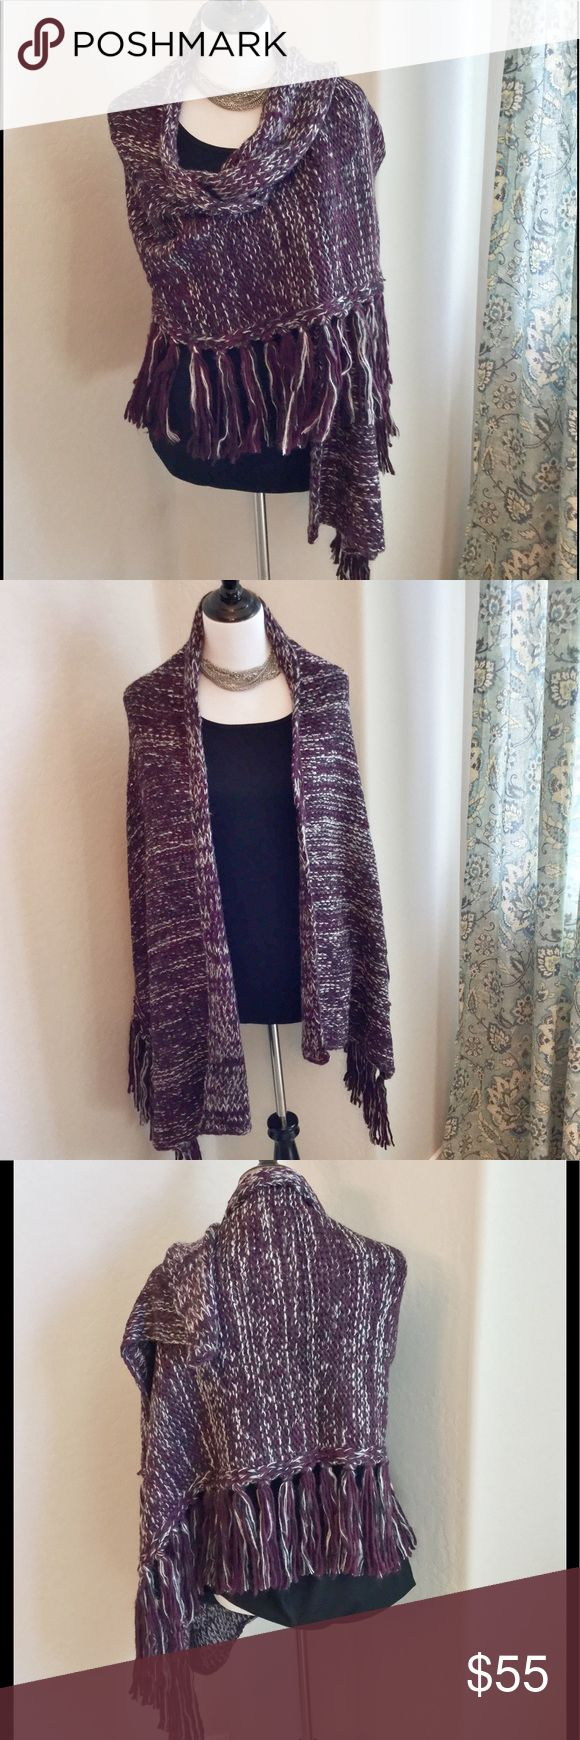 ❄️Rebecca Minkoff Wrap This gorgeous knitted wrap by Rebecca Minkoff is divine. The softness and coziness of this wrap is perfect for the upcoming cool weather. The color is a plum and white blend. Brand new, never worn, no tag. ❄️ This is park of the pre-winter wear sale. Bundle for additional savings. Rebecca Minkoff Accessories Scarves & Wraps